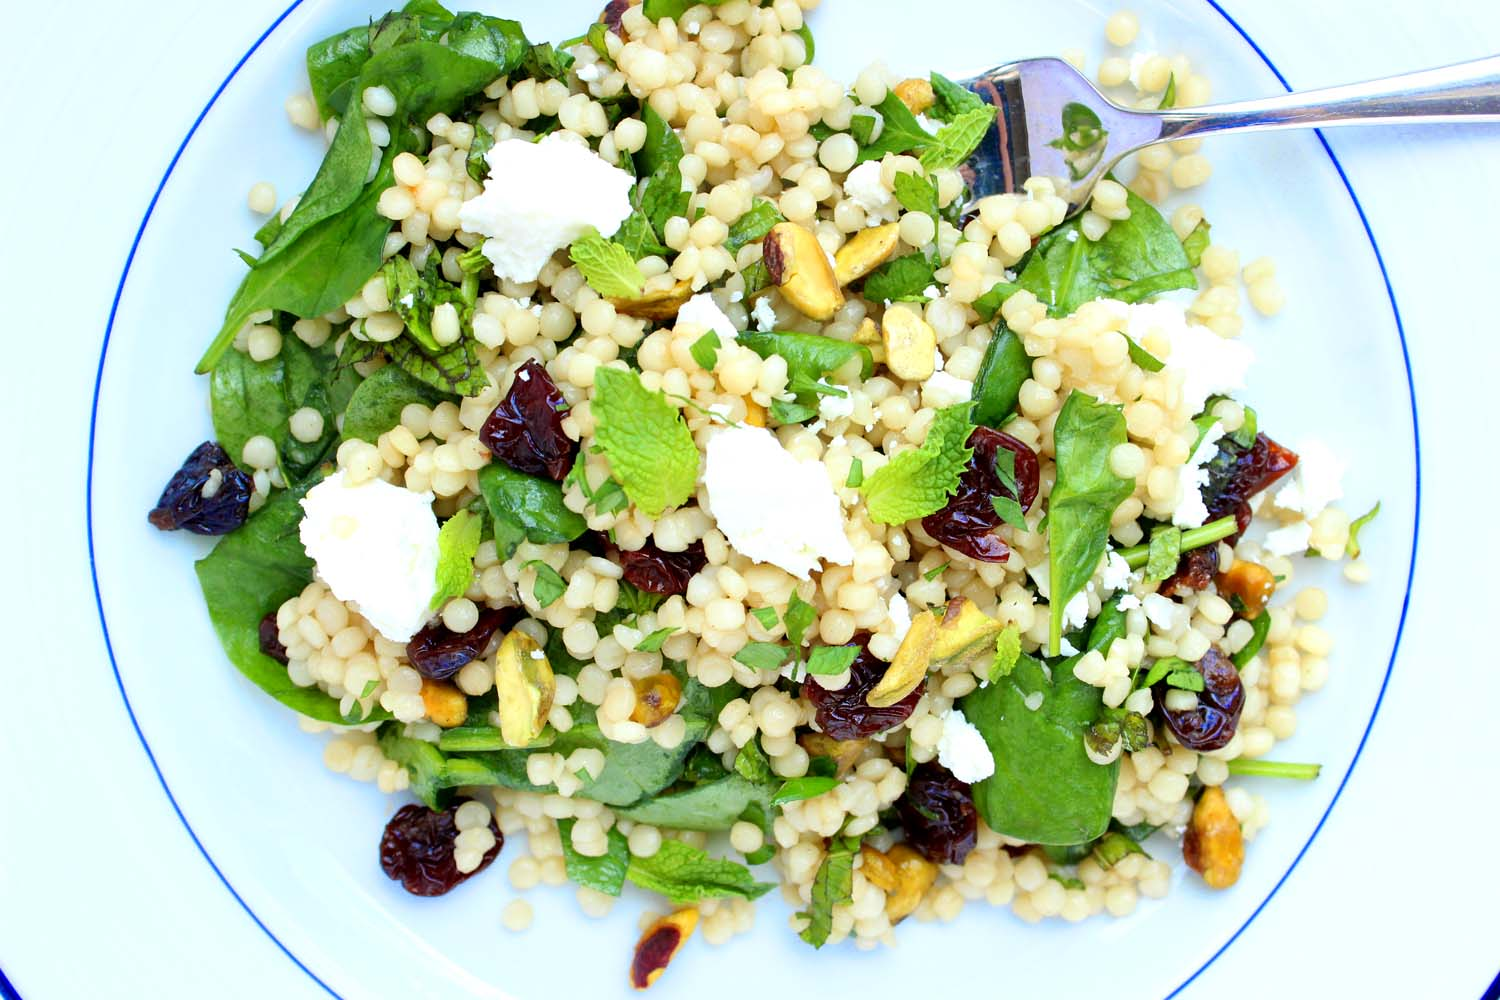 Israeli Couscous with Cherries & Pistachios   | Image:   Laura Messersmith